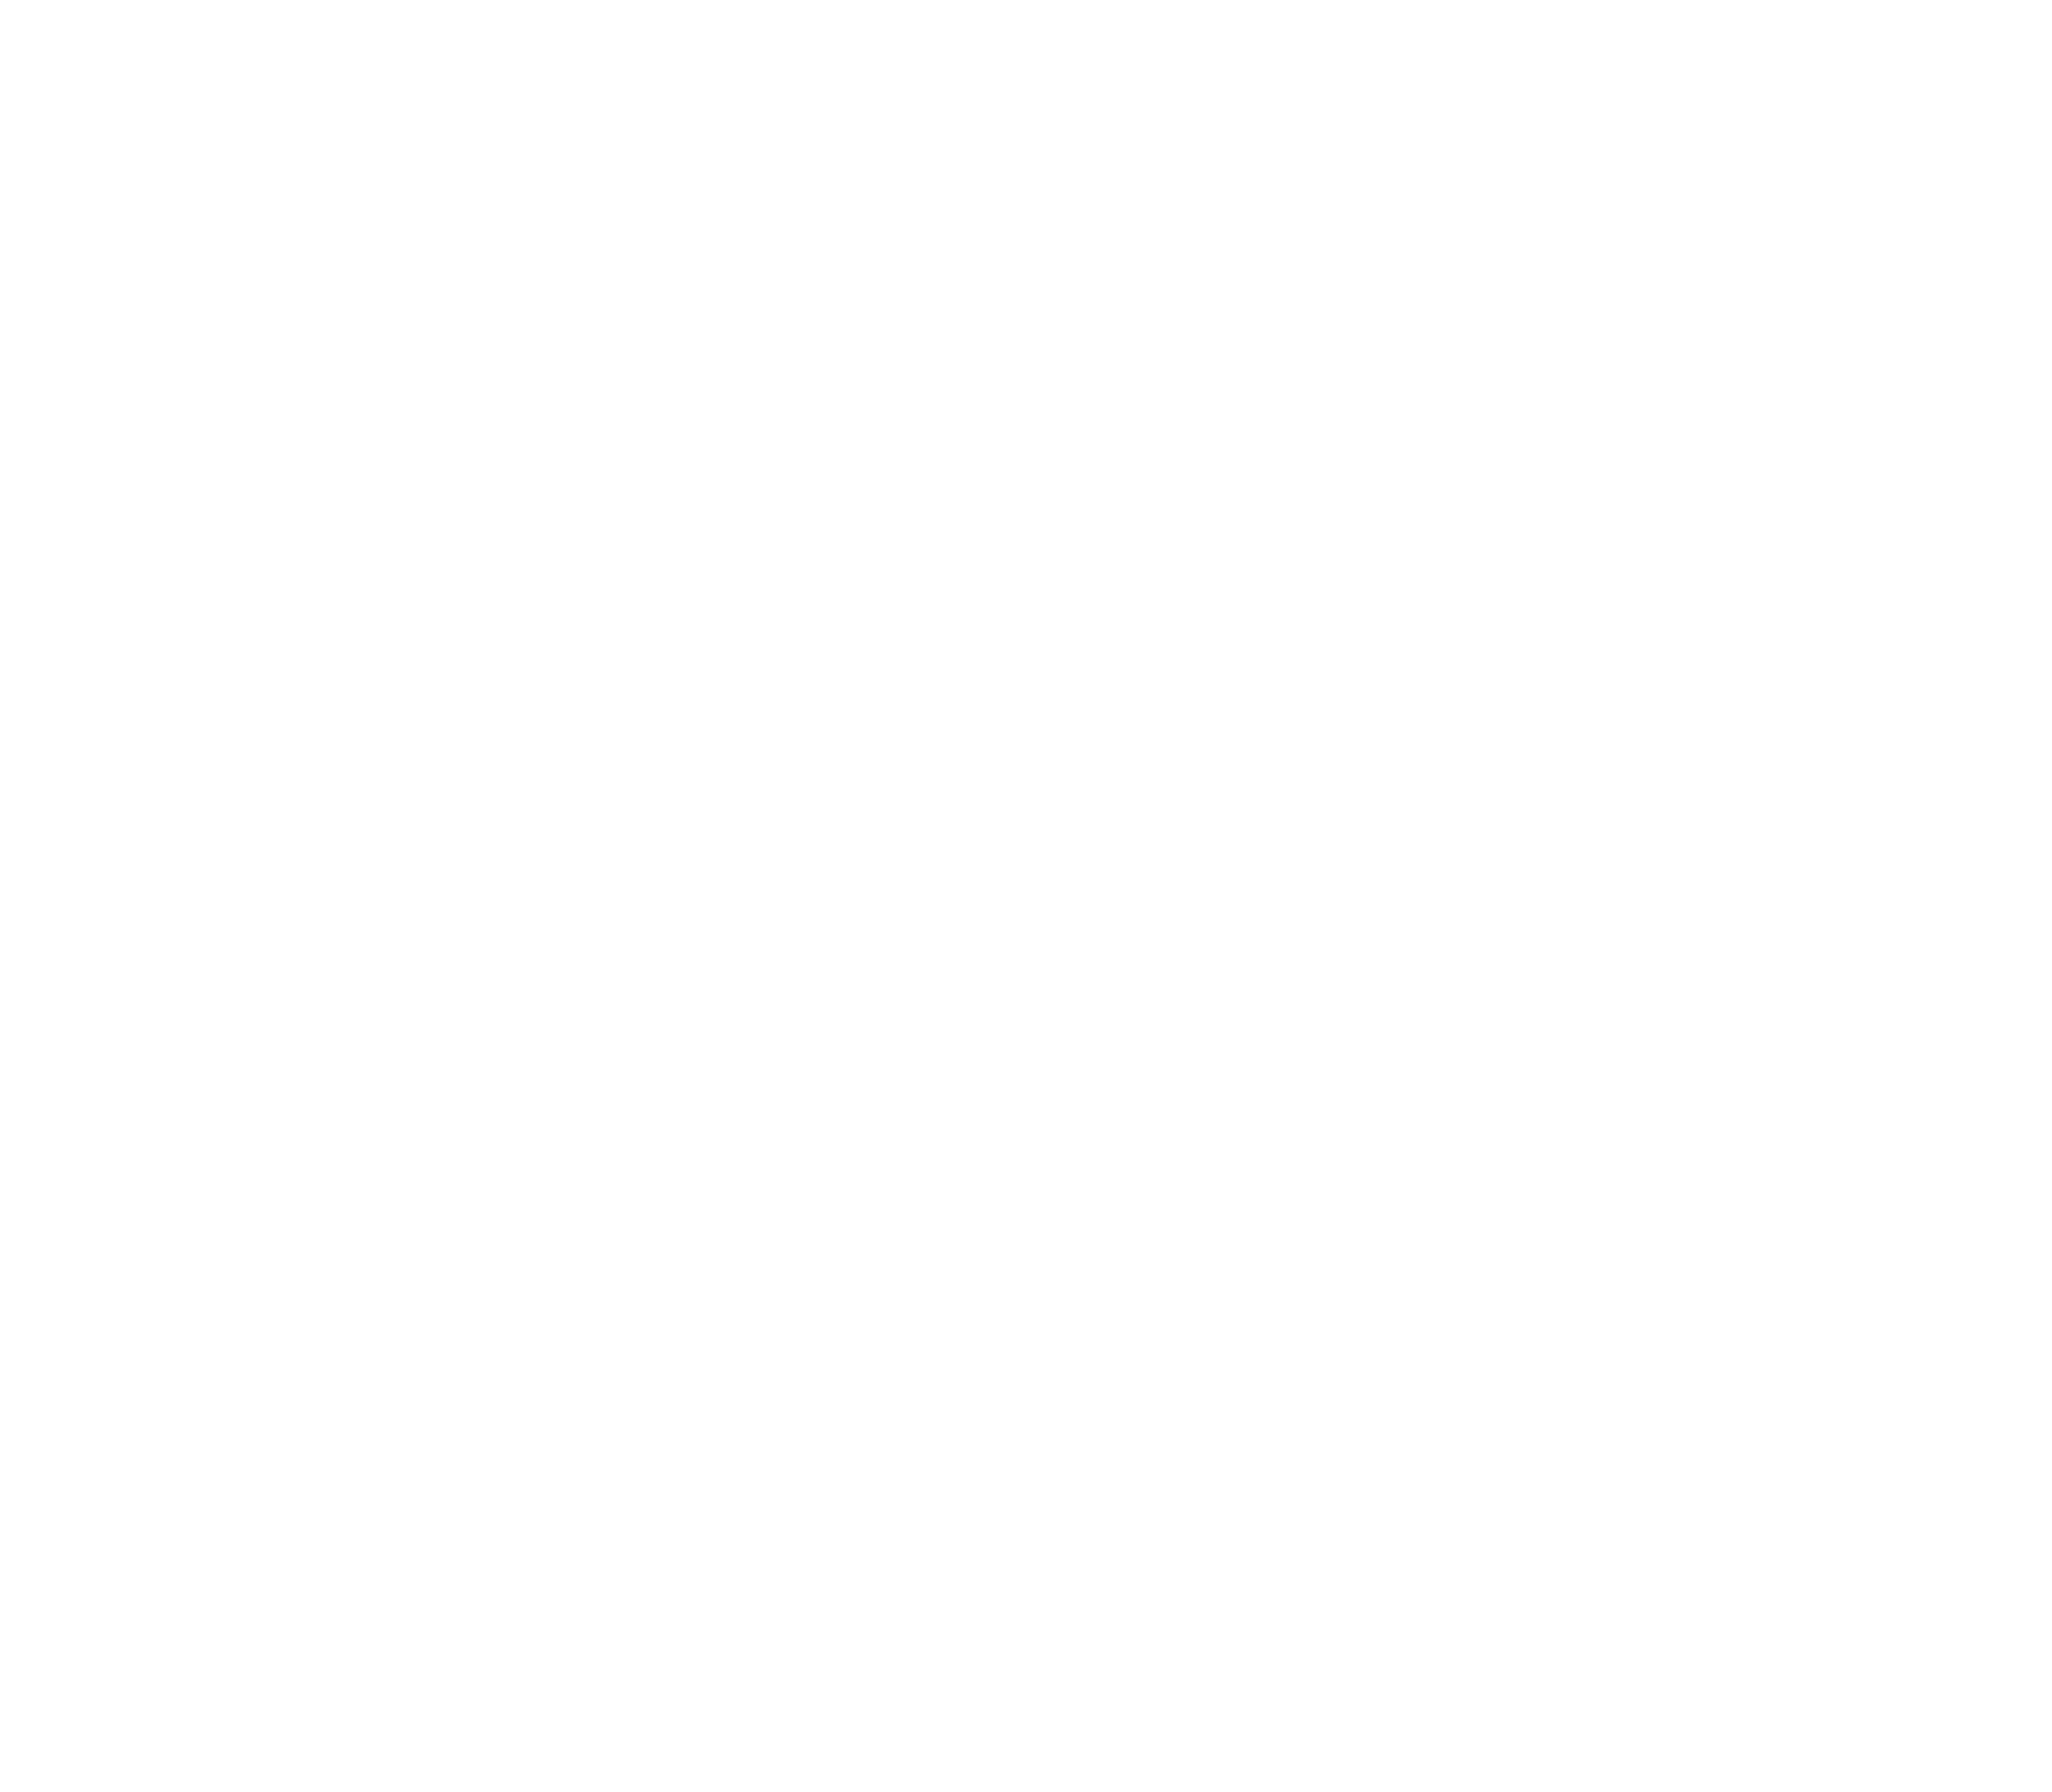 Linda G Photography